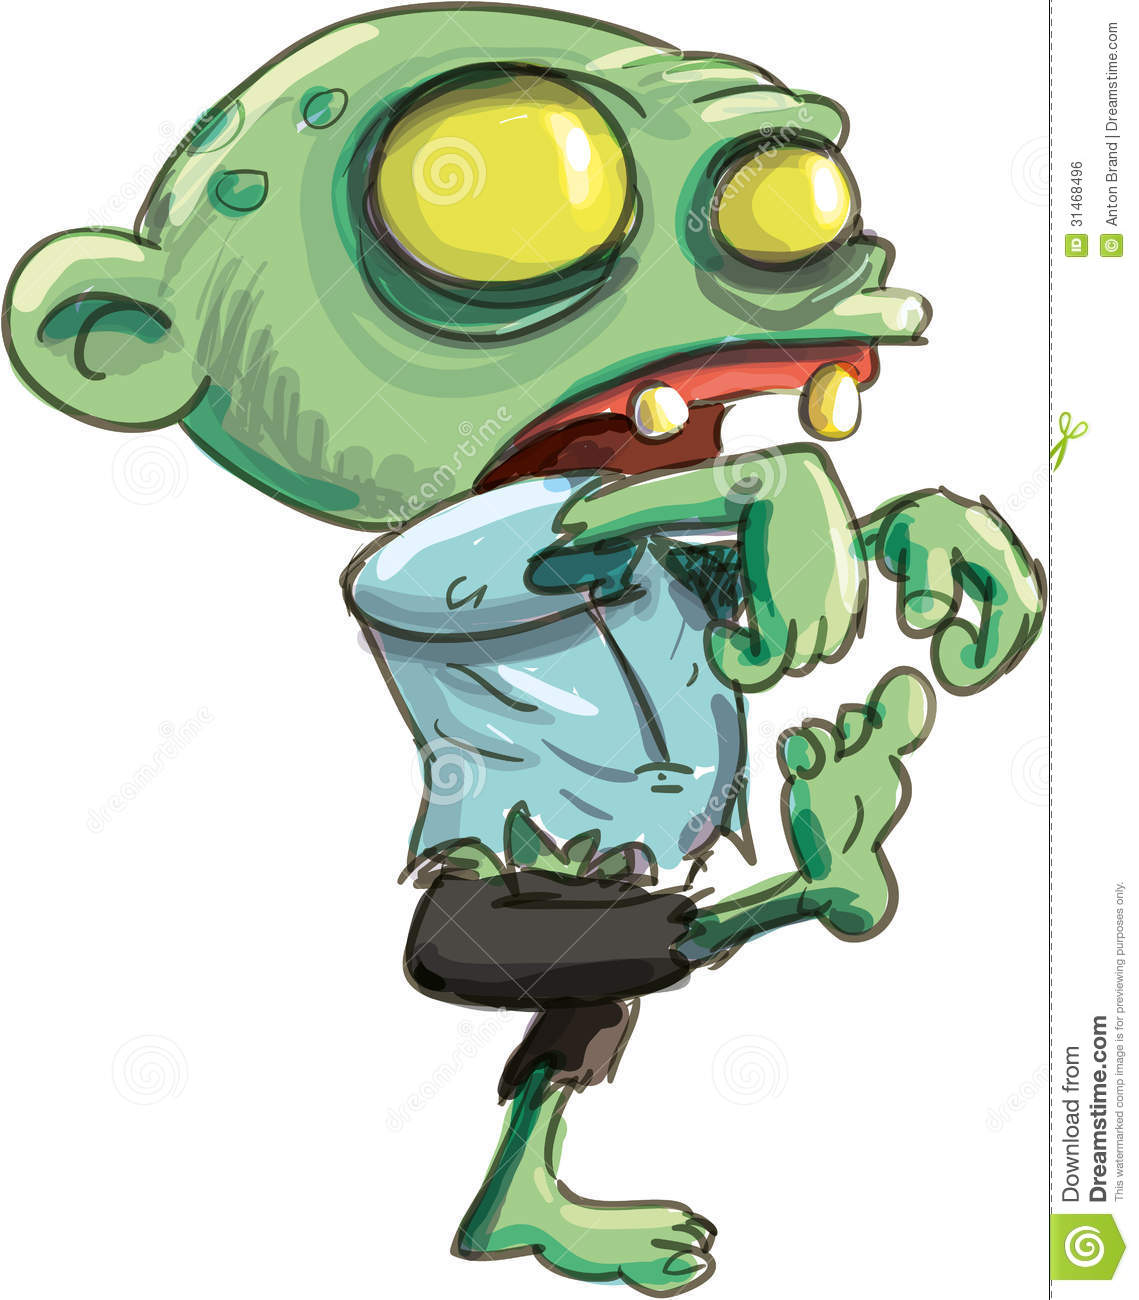 Zombie clipart green Cute zombies of cute illustration